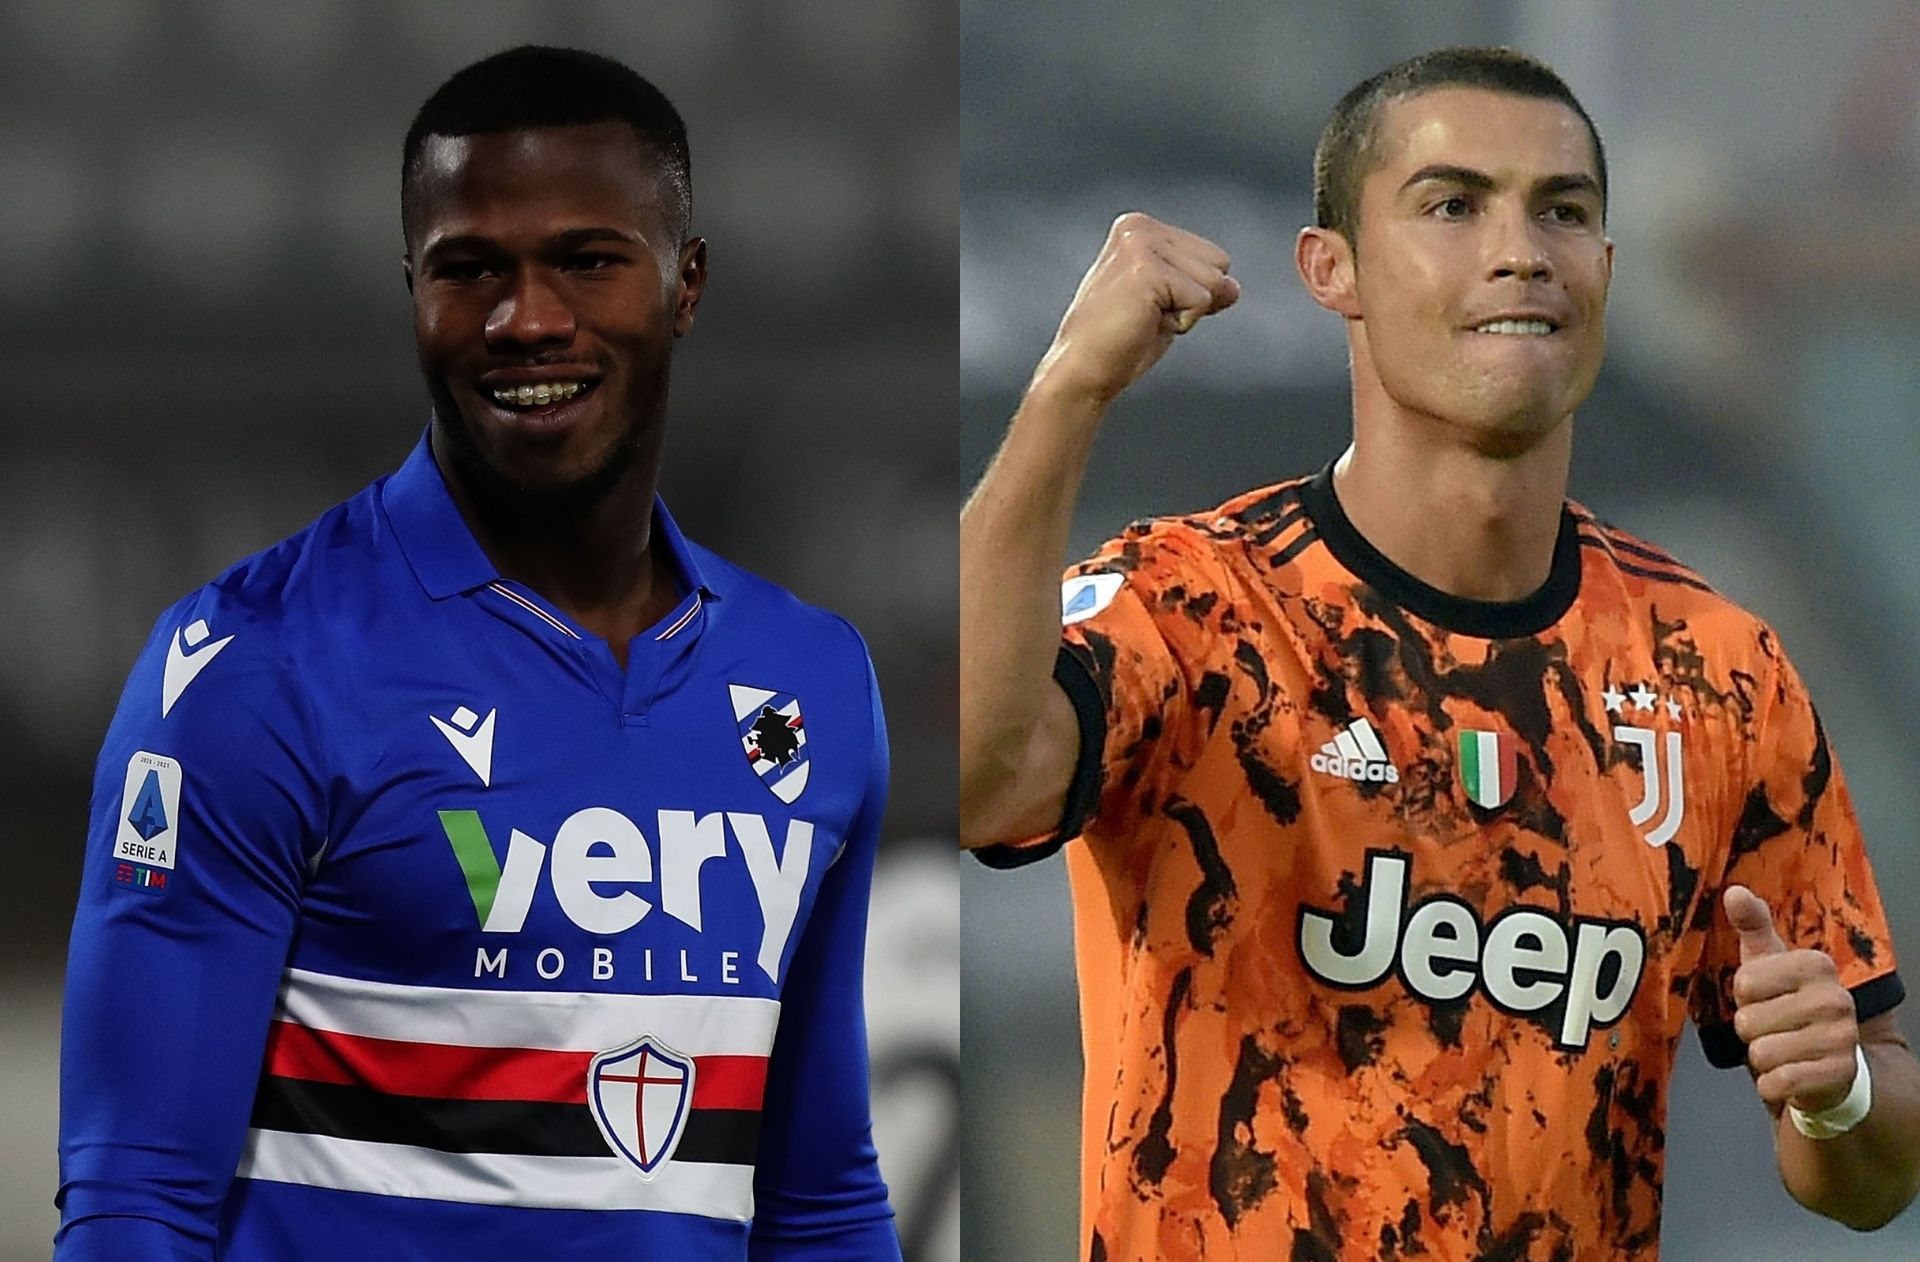 Sampdoria juventus betting tips plb meaning in betting what does 4/5